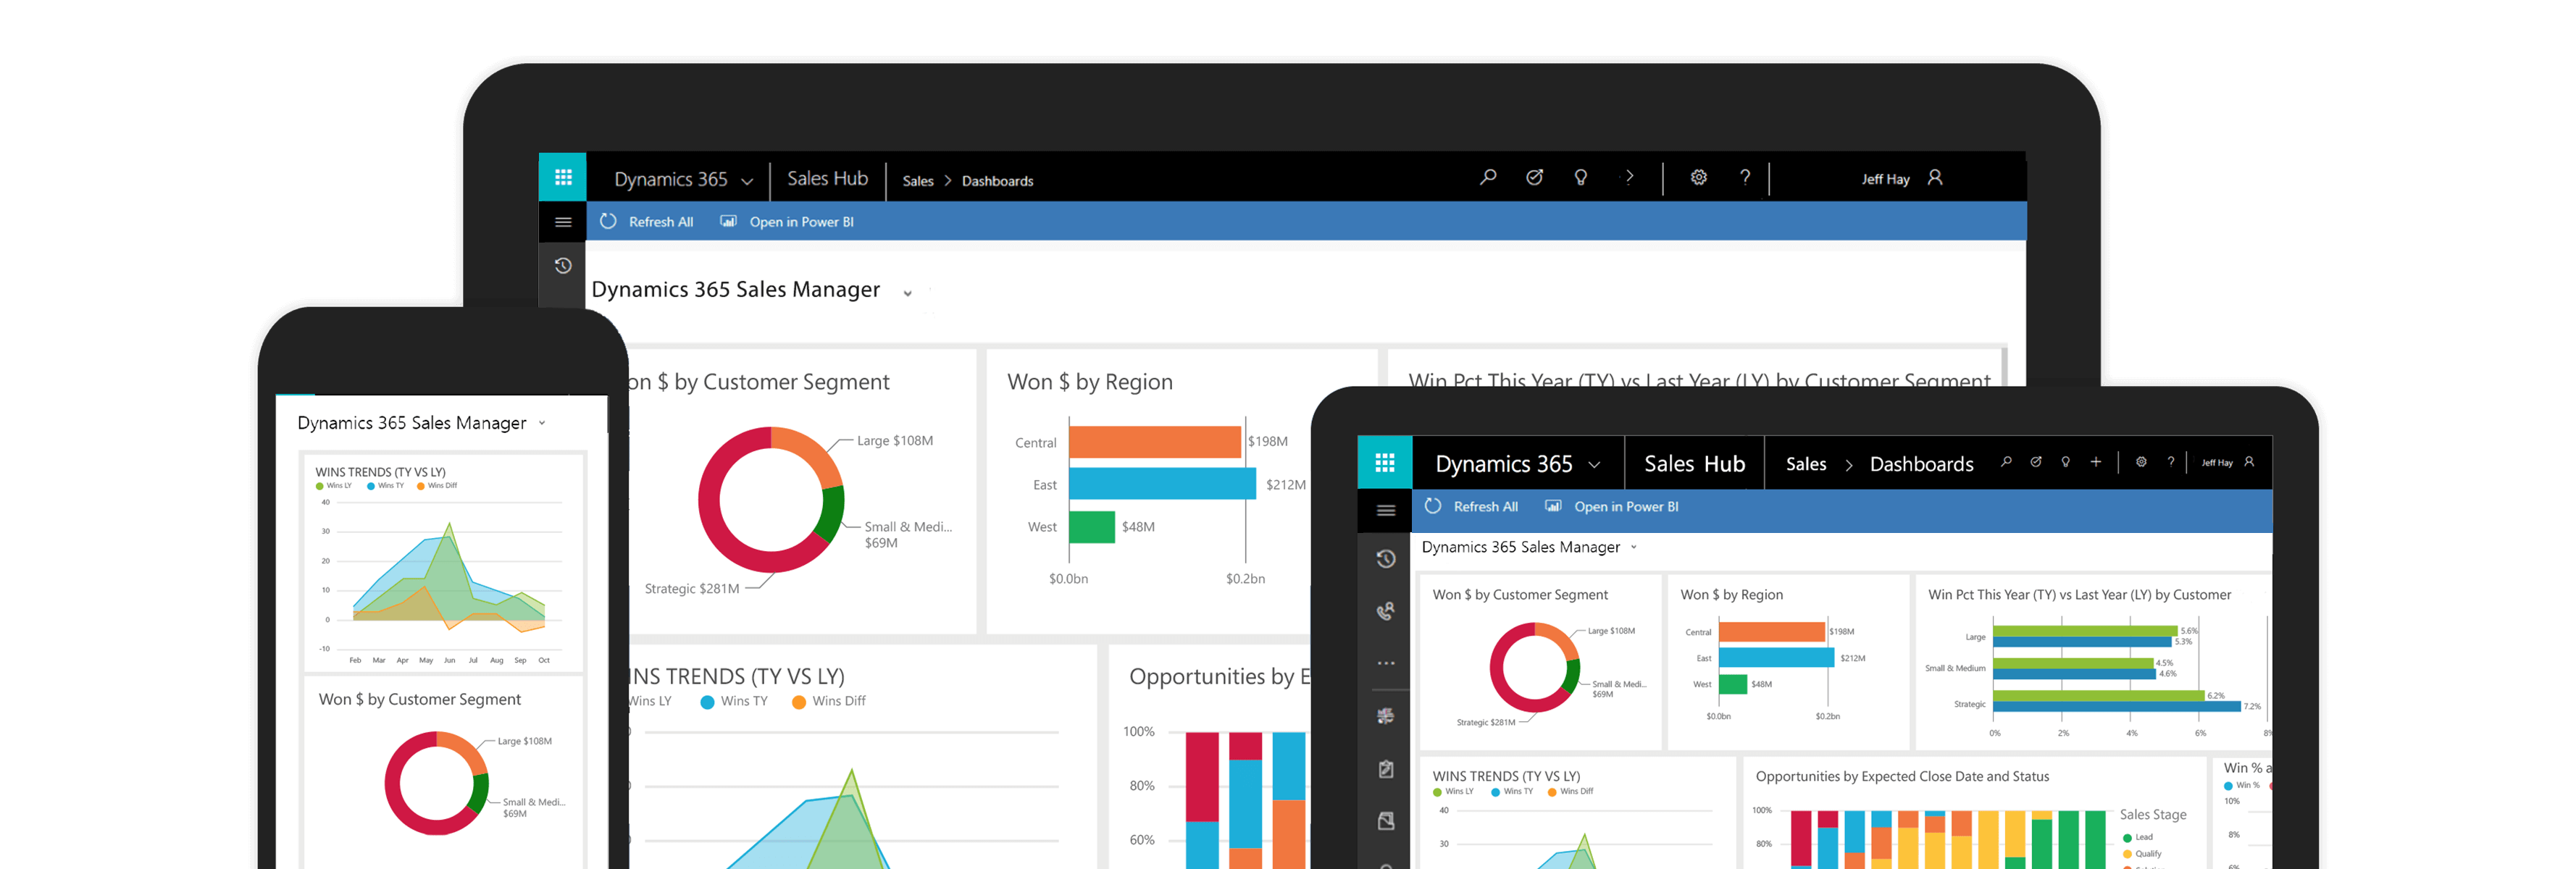 Skjermbilde av Dynamics 365 for Sales